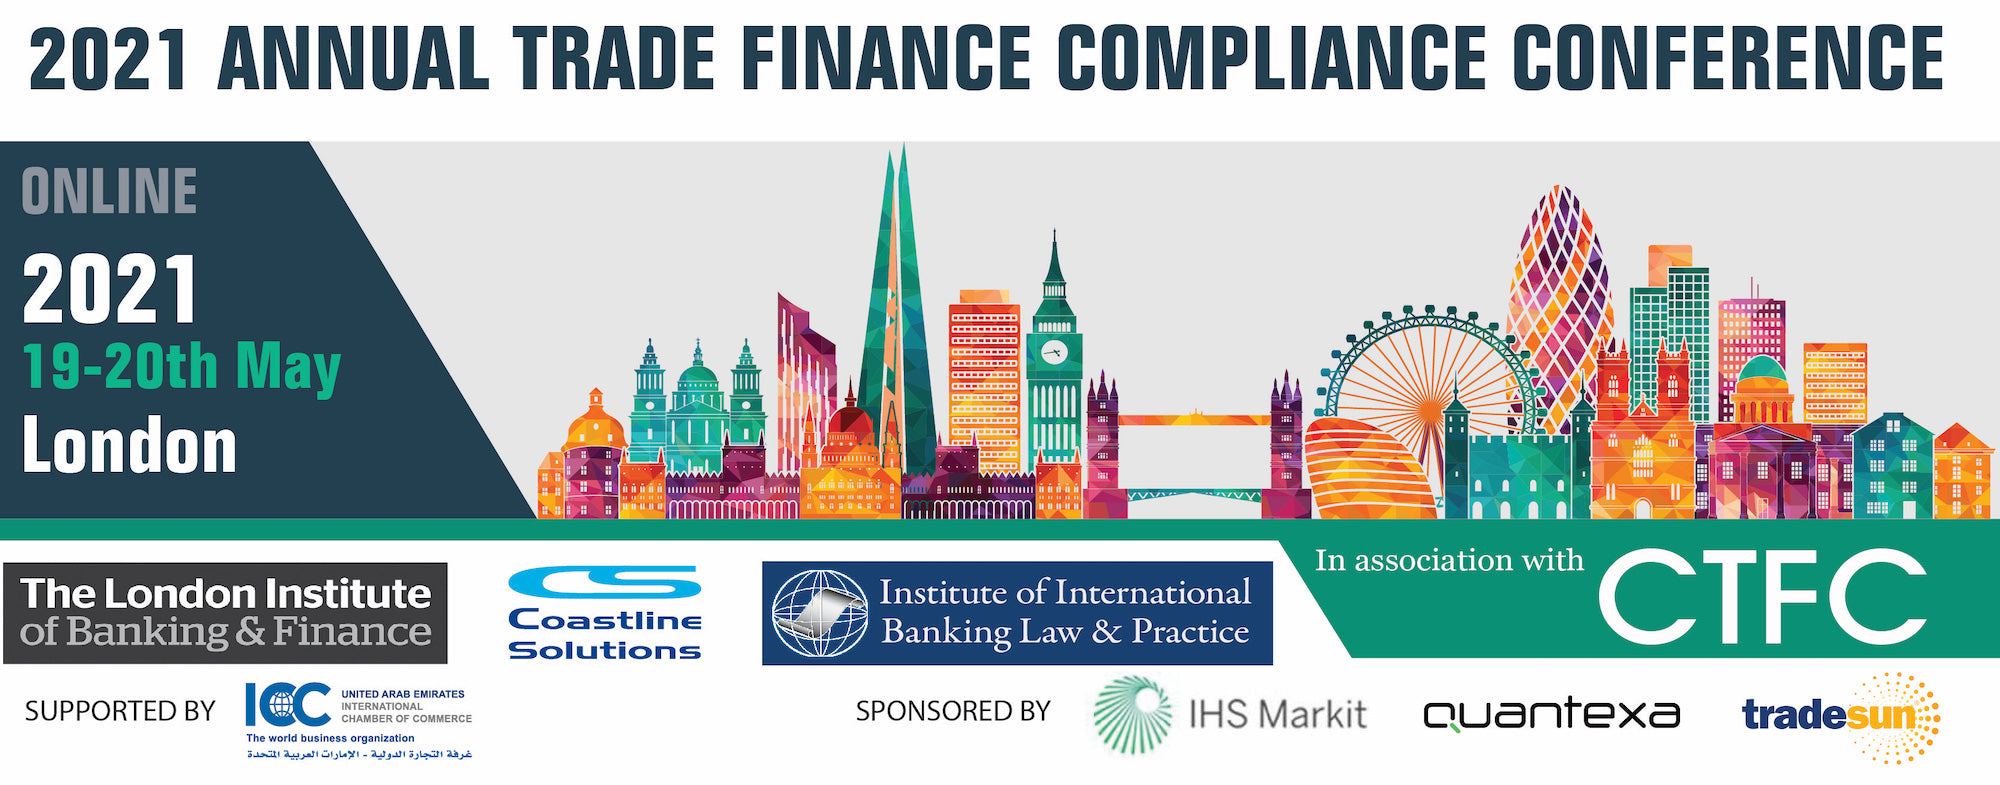 2021 Annual Trade Finance Compliance Conference | London Online | 19-20 May | 7 CPDs